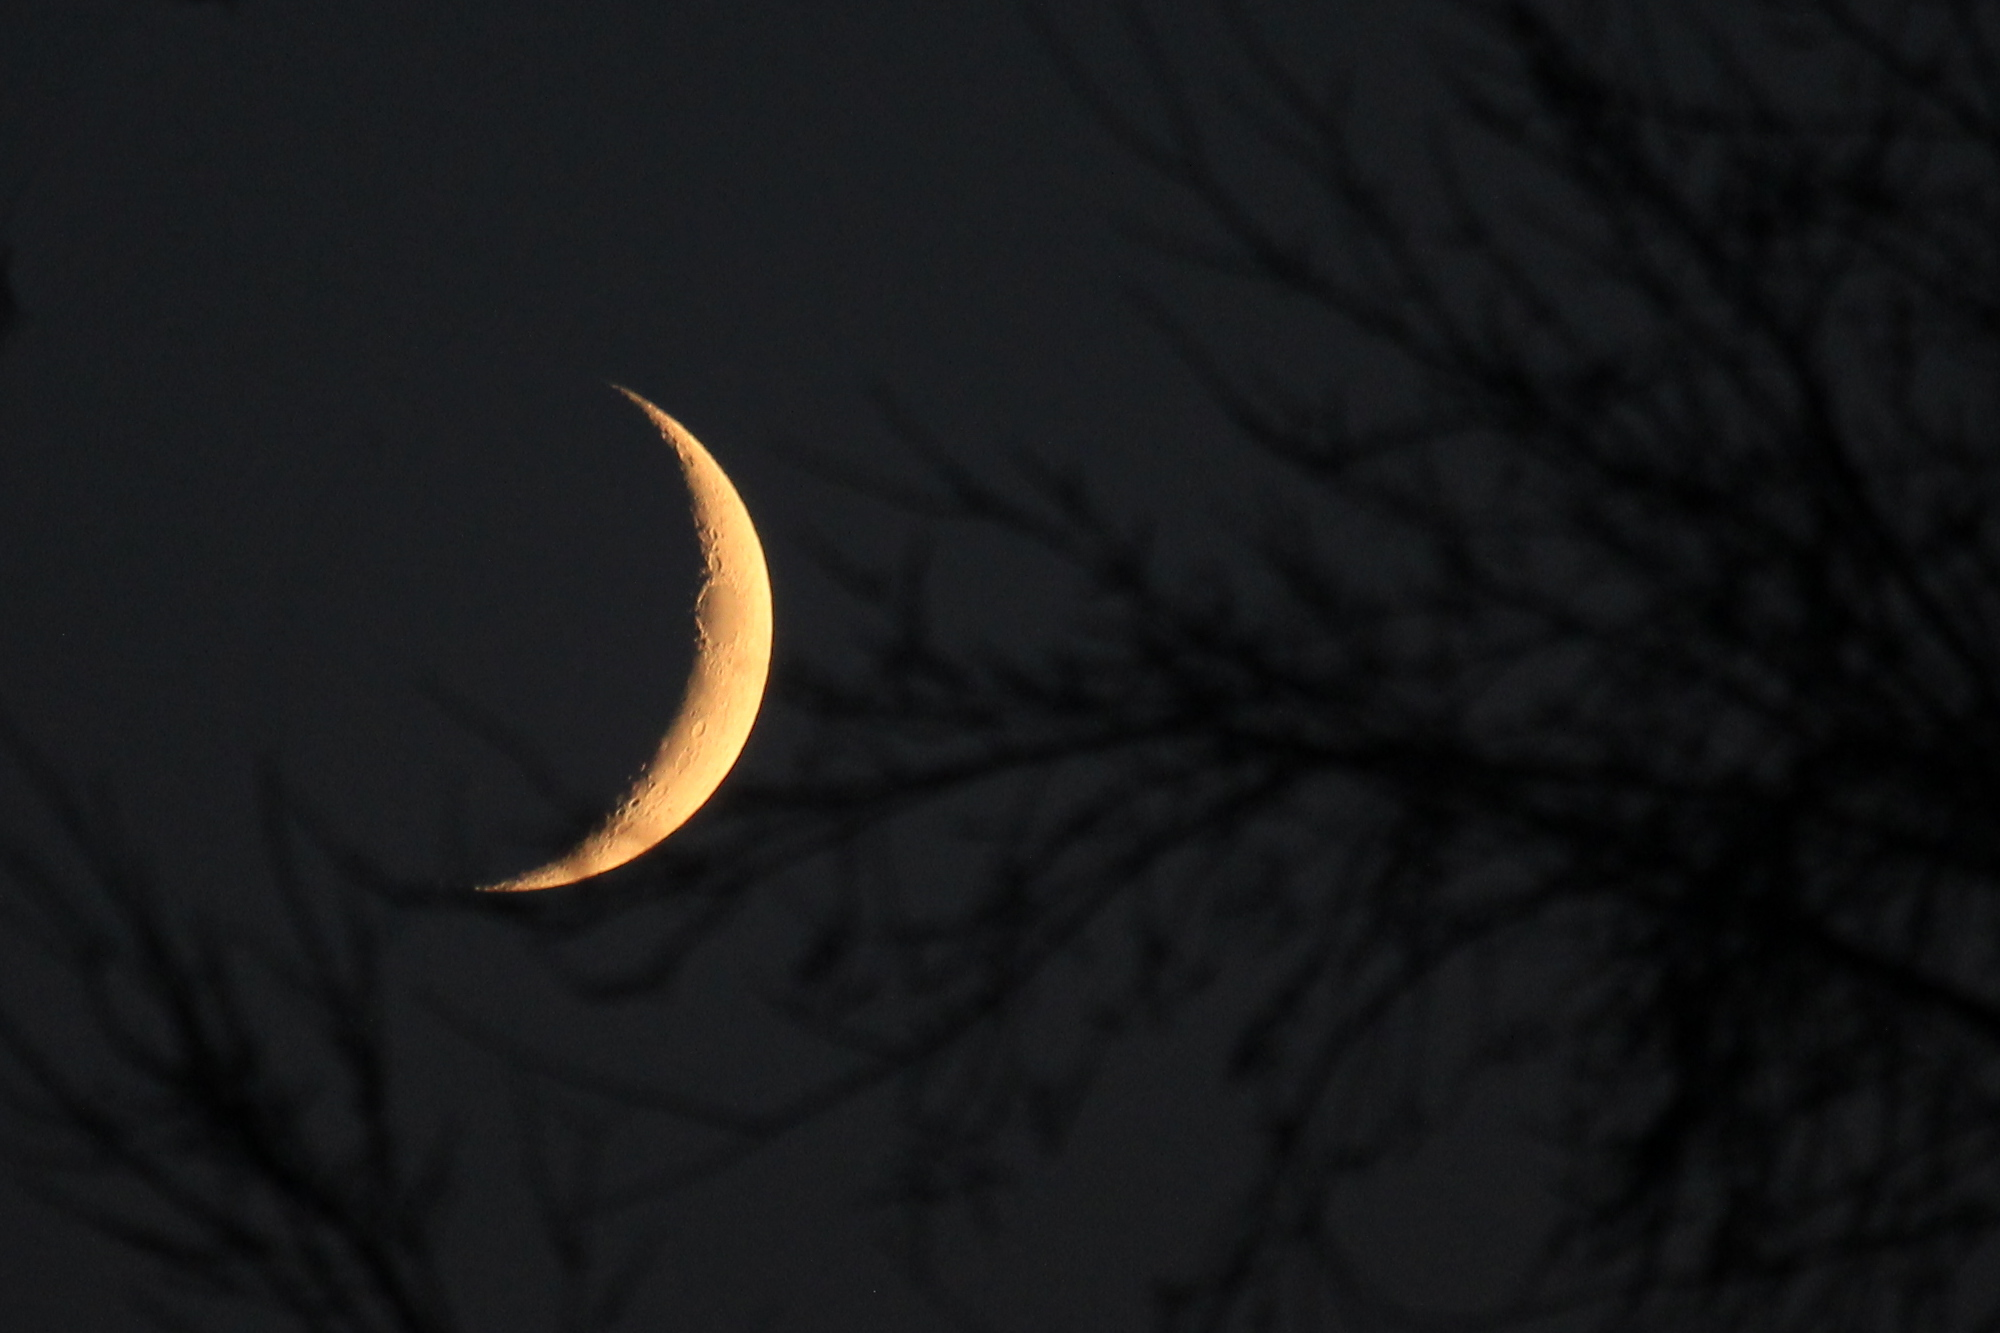 The crescent moon behind tree branches